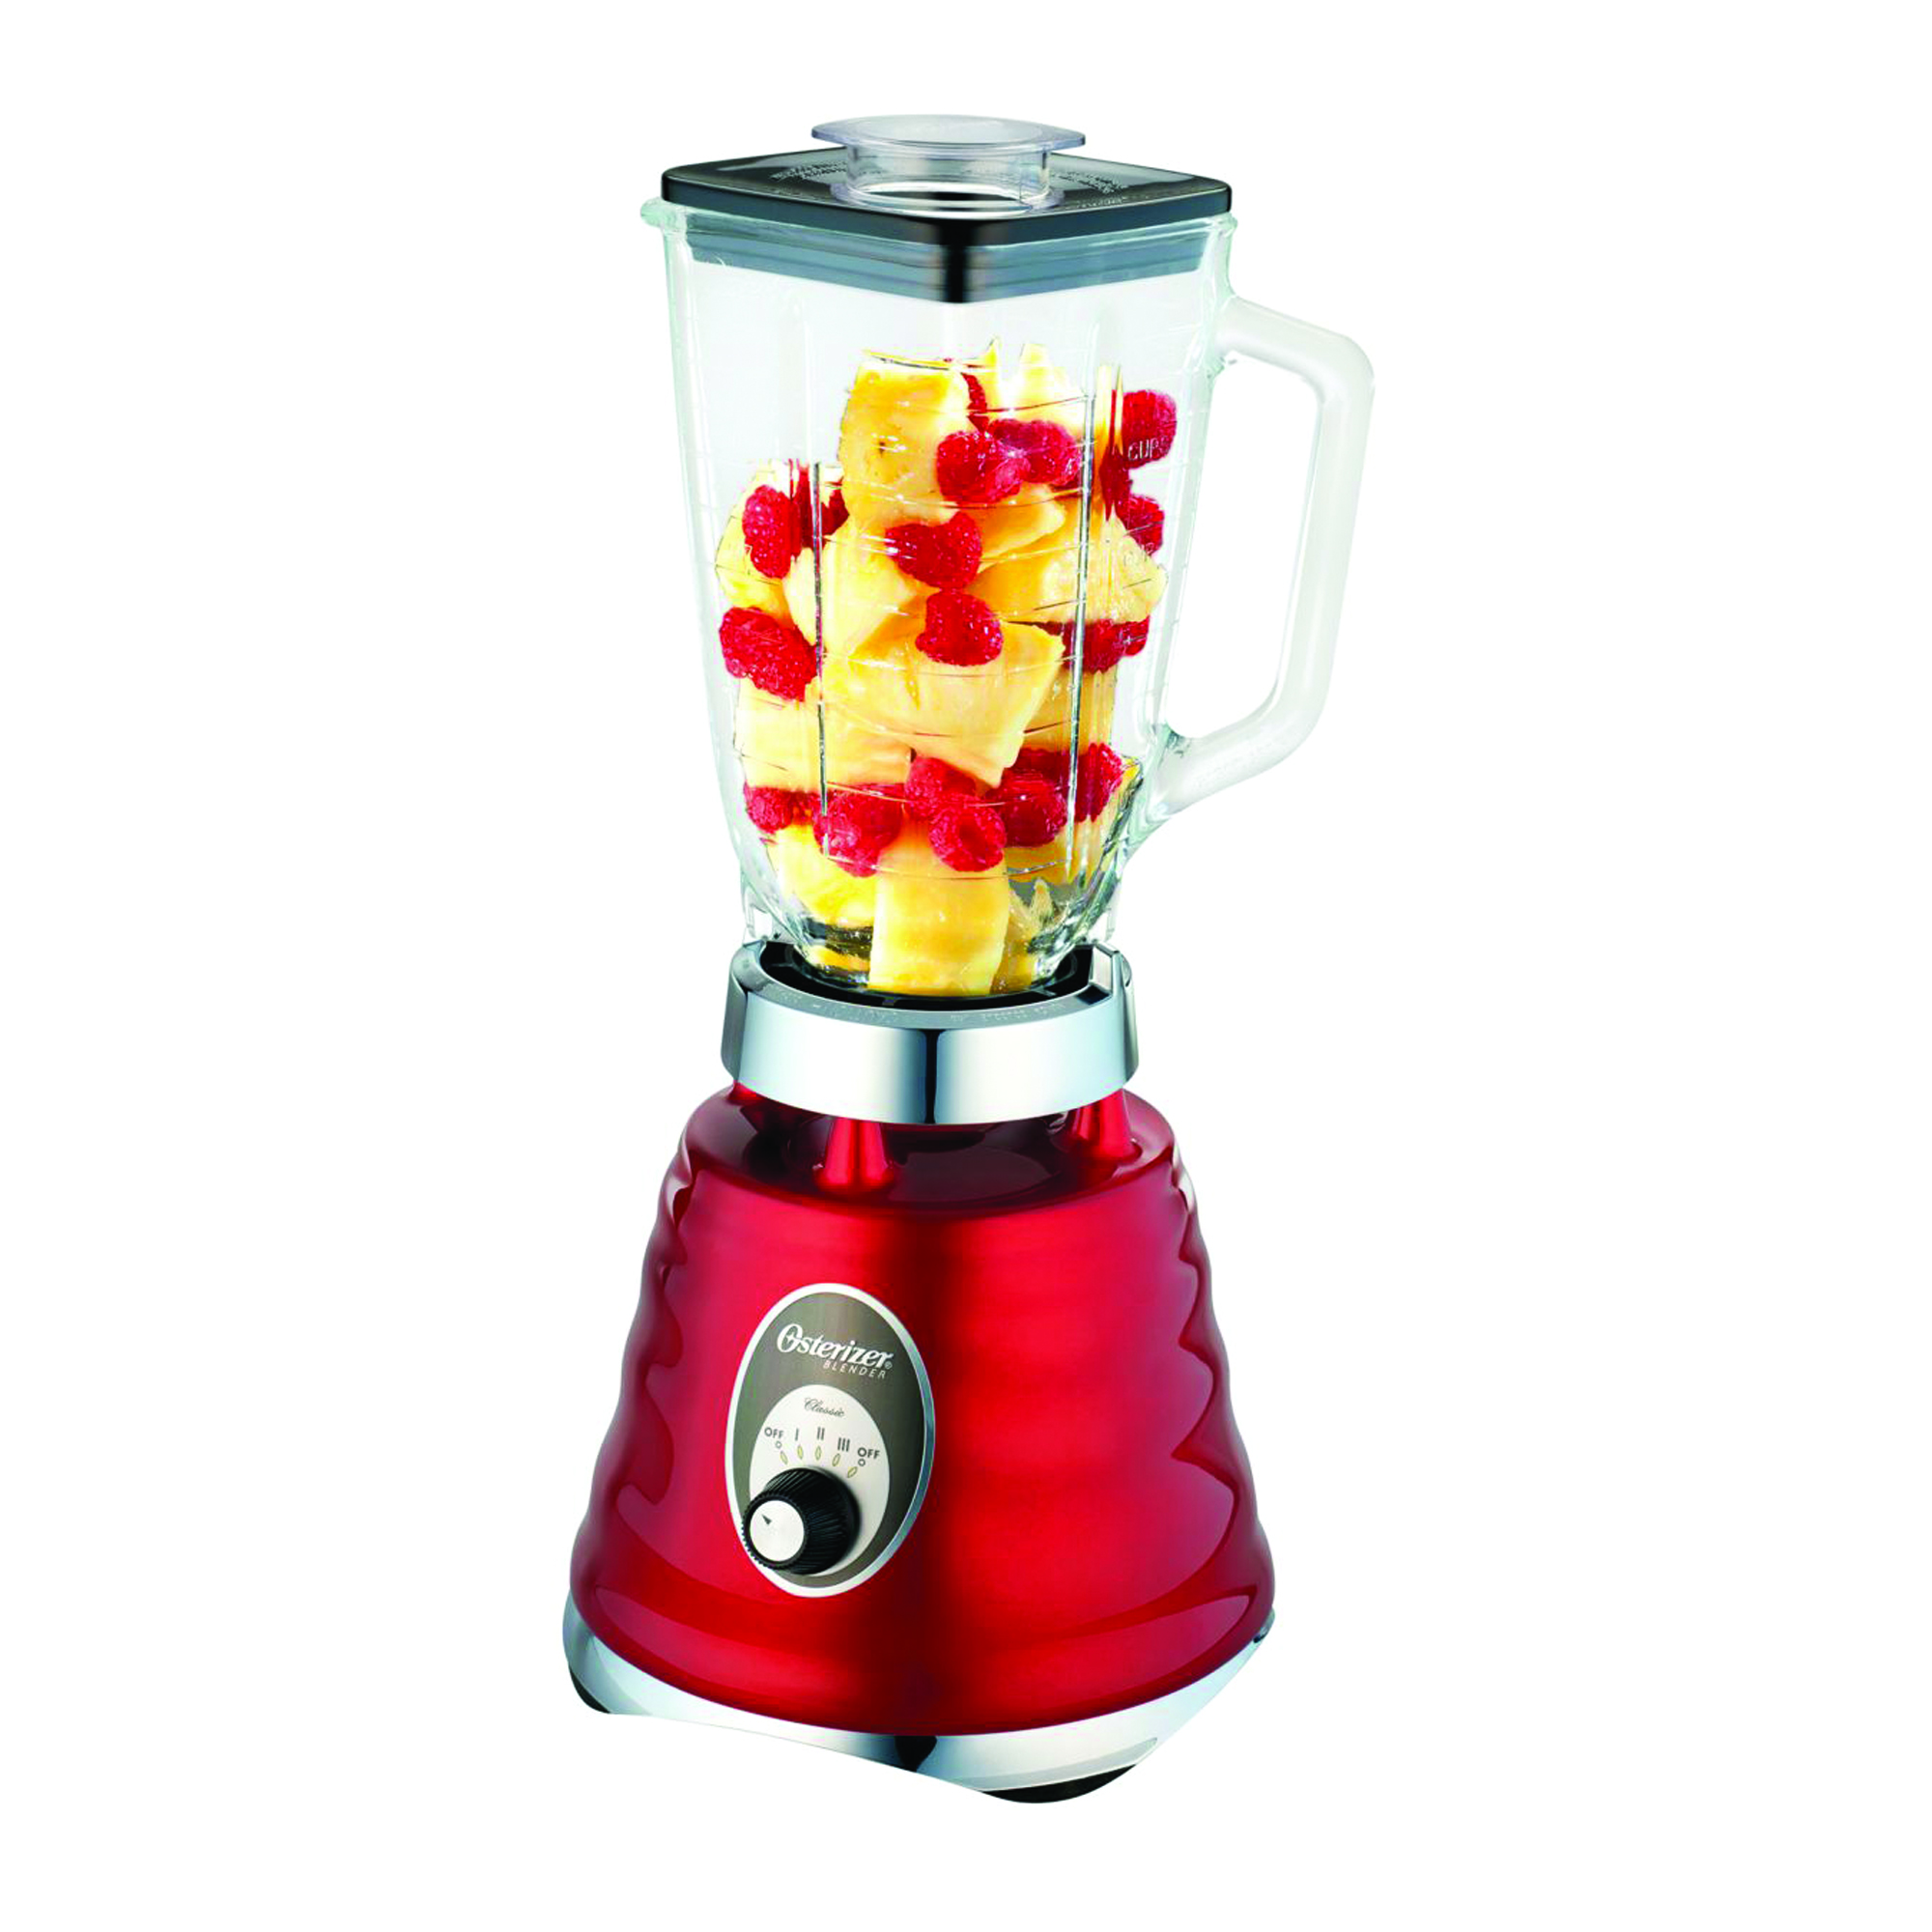 OSTER 4126 Red 3-Speed Blender 220-240 Volts 50Hz Export Only